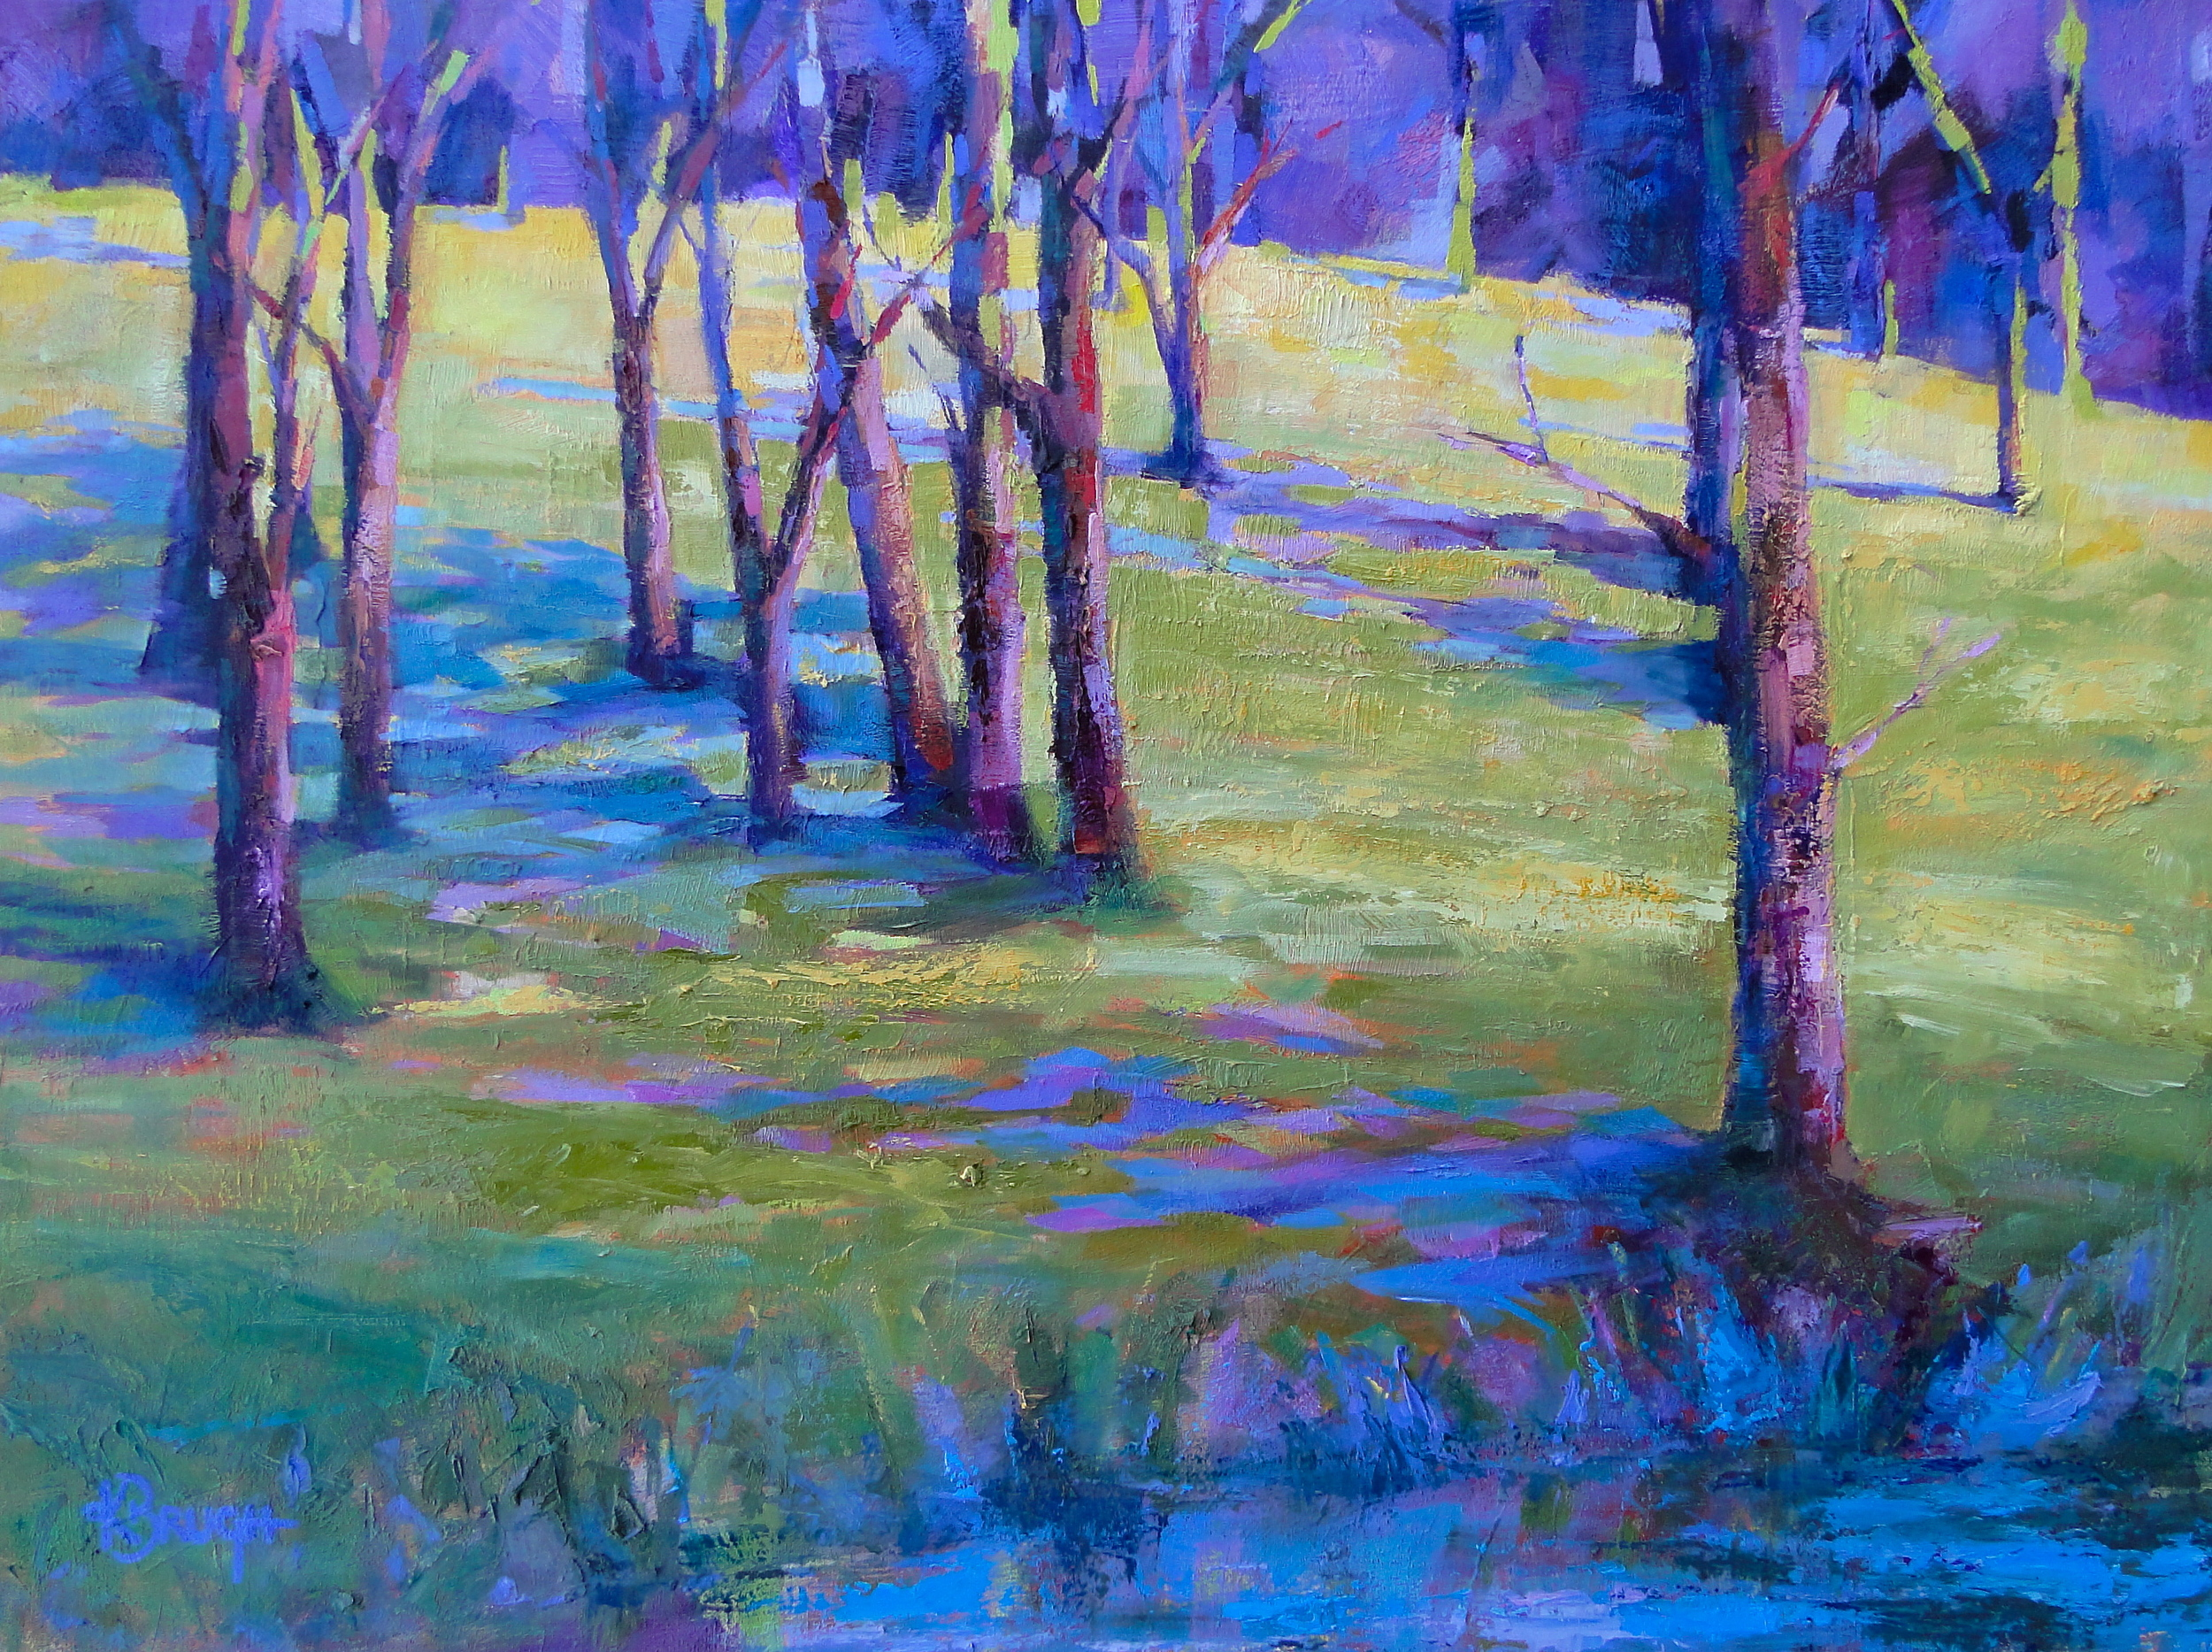 Kelley Brugh_Tranquil Forest_30x40, oil on canvas.JPG